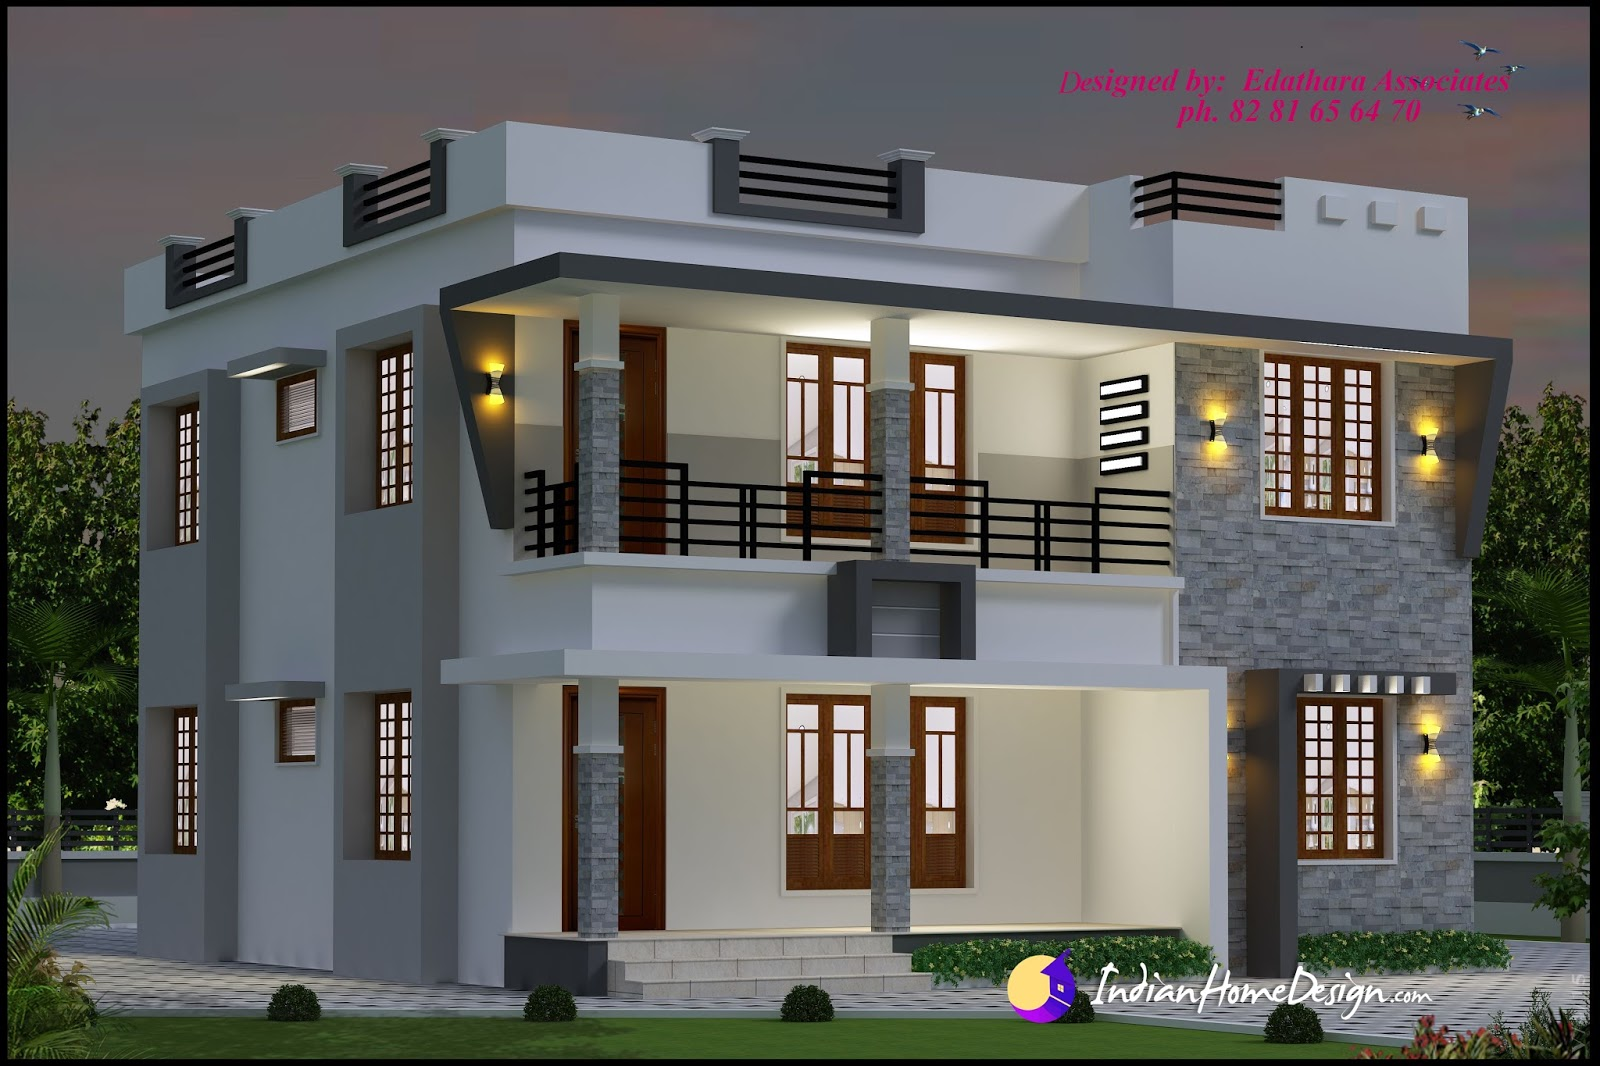 1696 sqft modern double floor kerala home design indian for Modern 3 bedroom house design